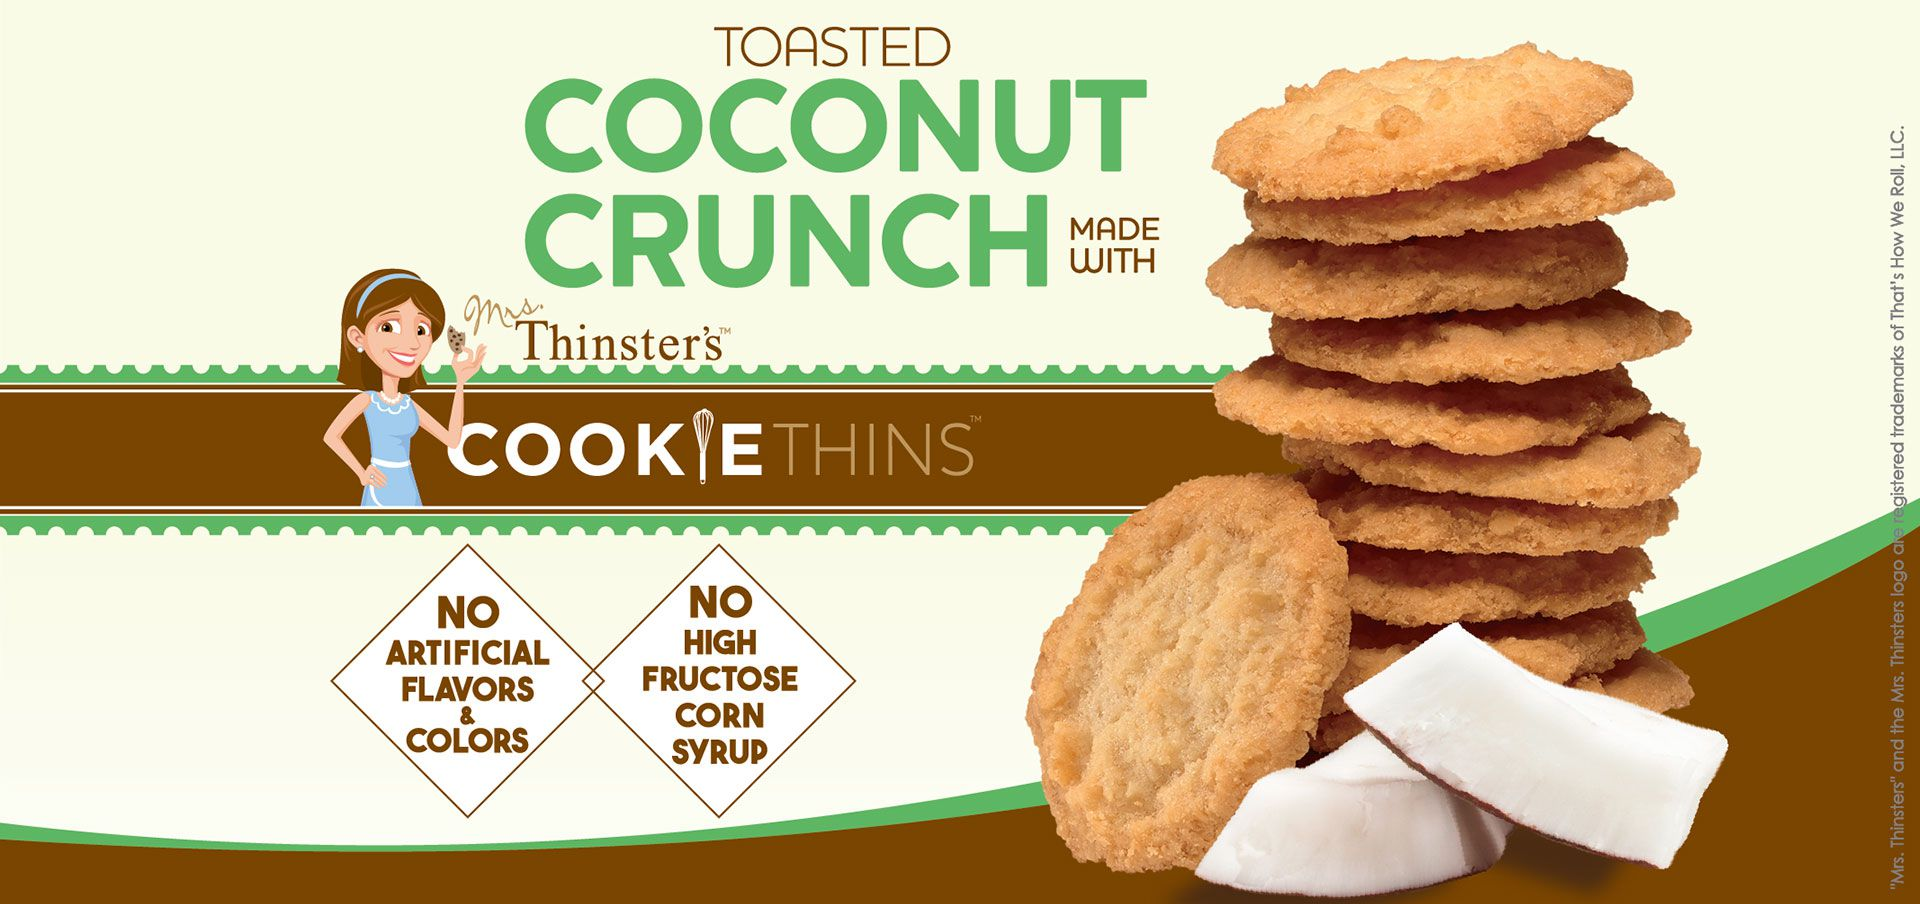 toasted coconut crunch made with mrs. thinster's cookie thins label image